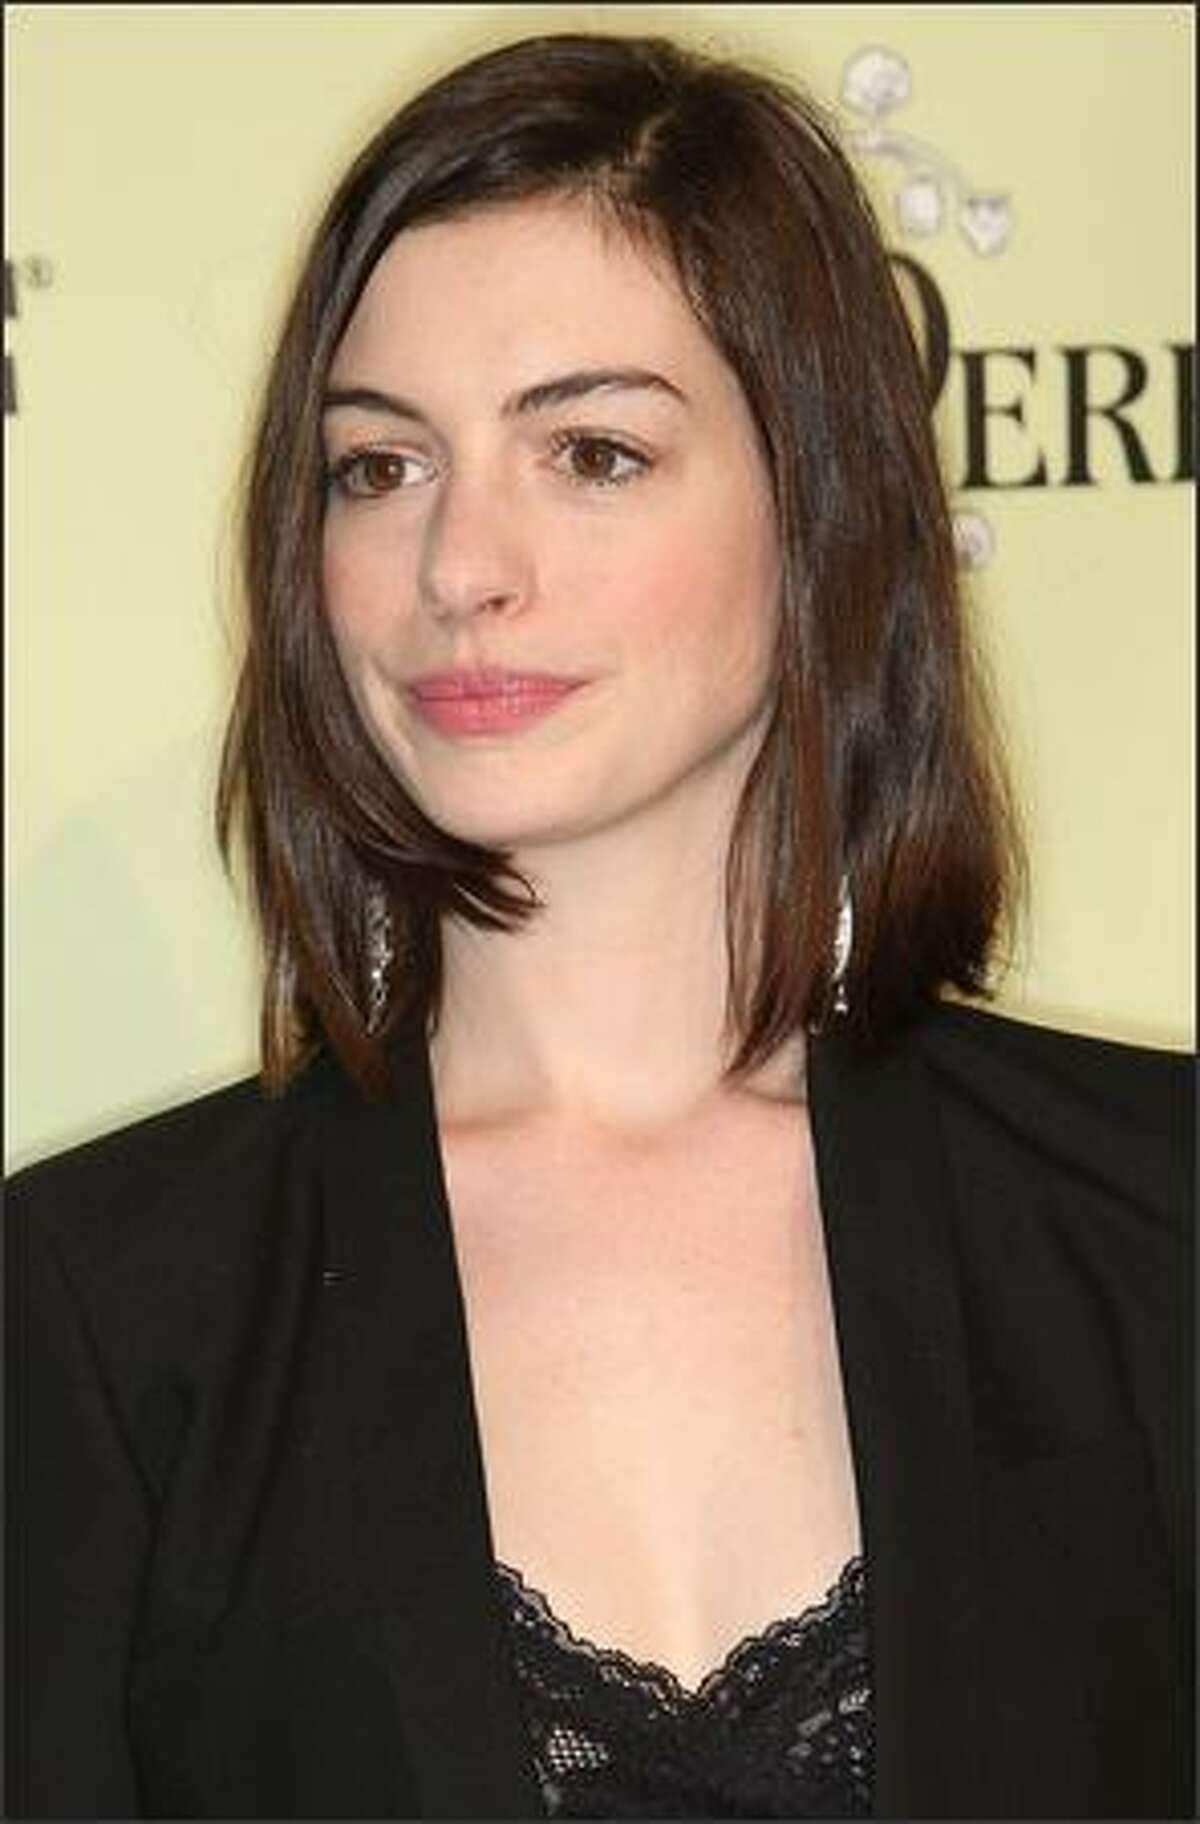 Actress Anne Hathaway attends the party.